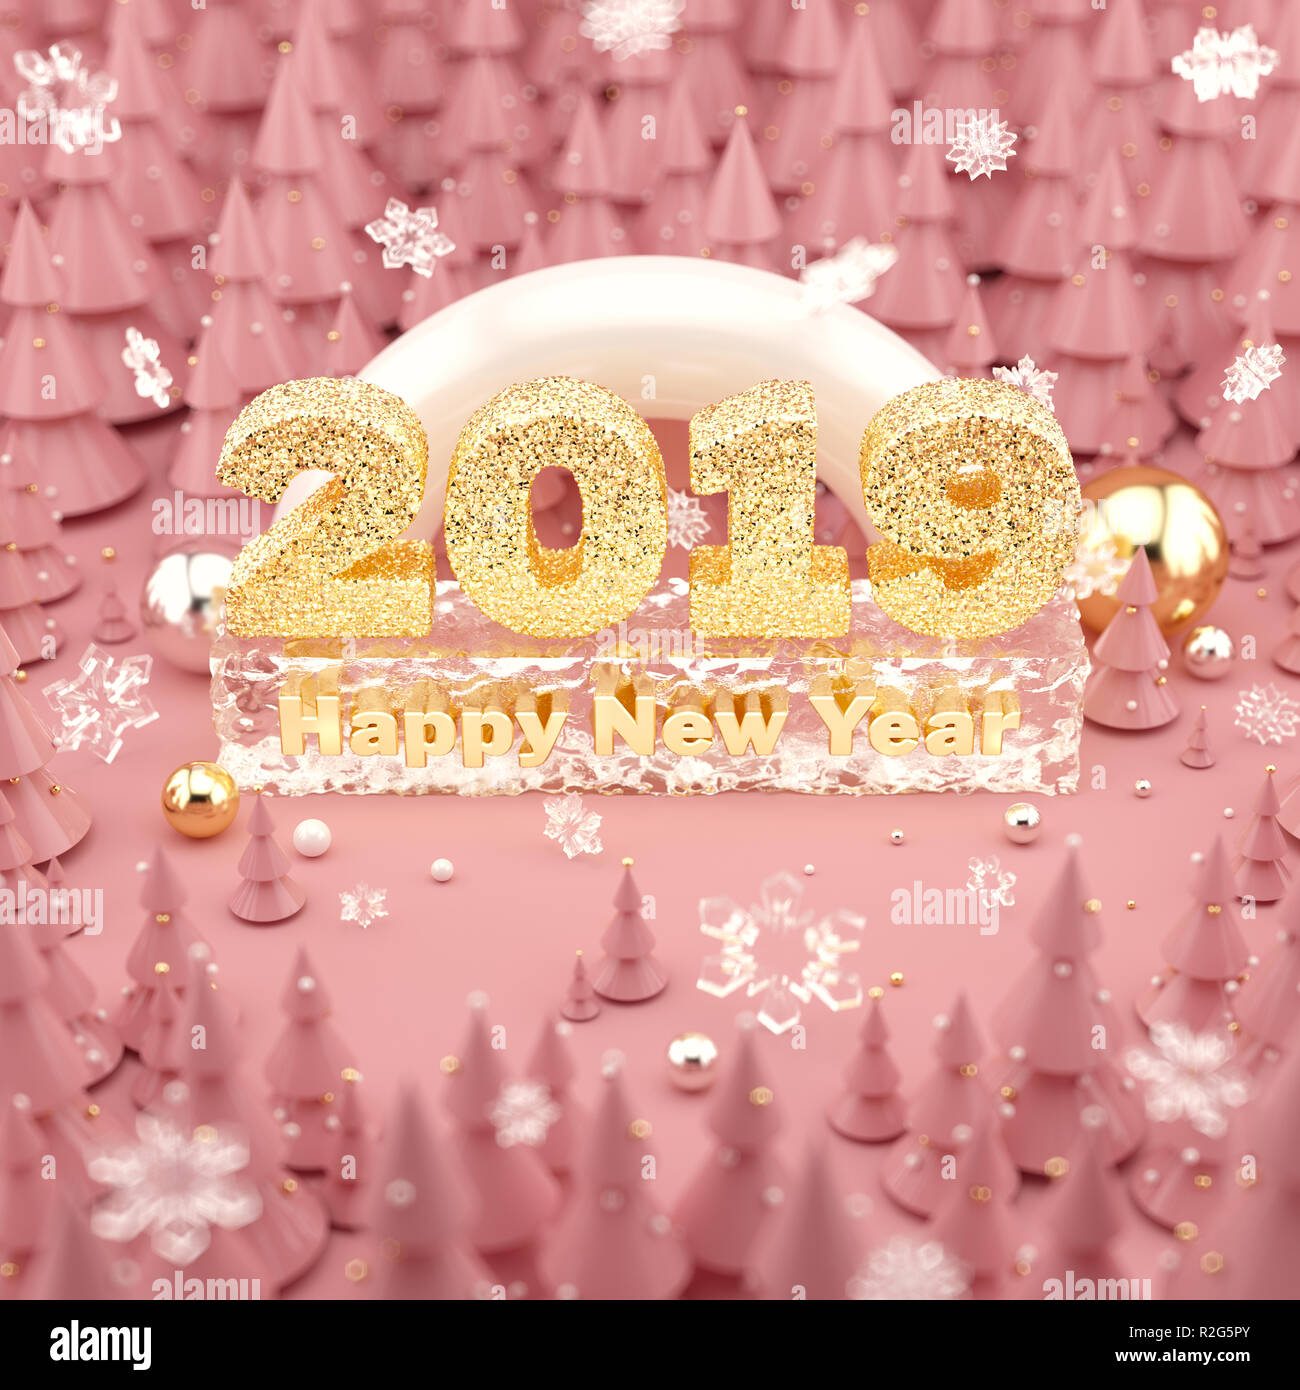 Happy New Year 2019 Rose Gold colored 3D illustration with Christmas trees. - Stock Image